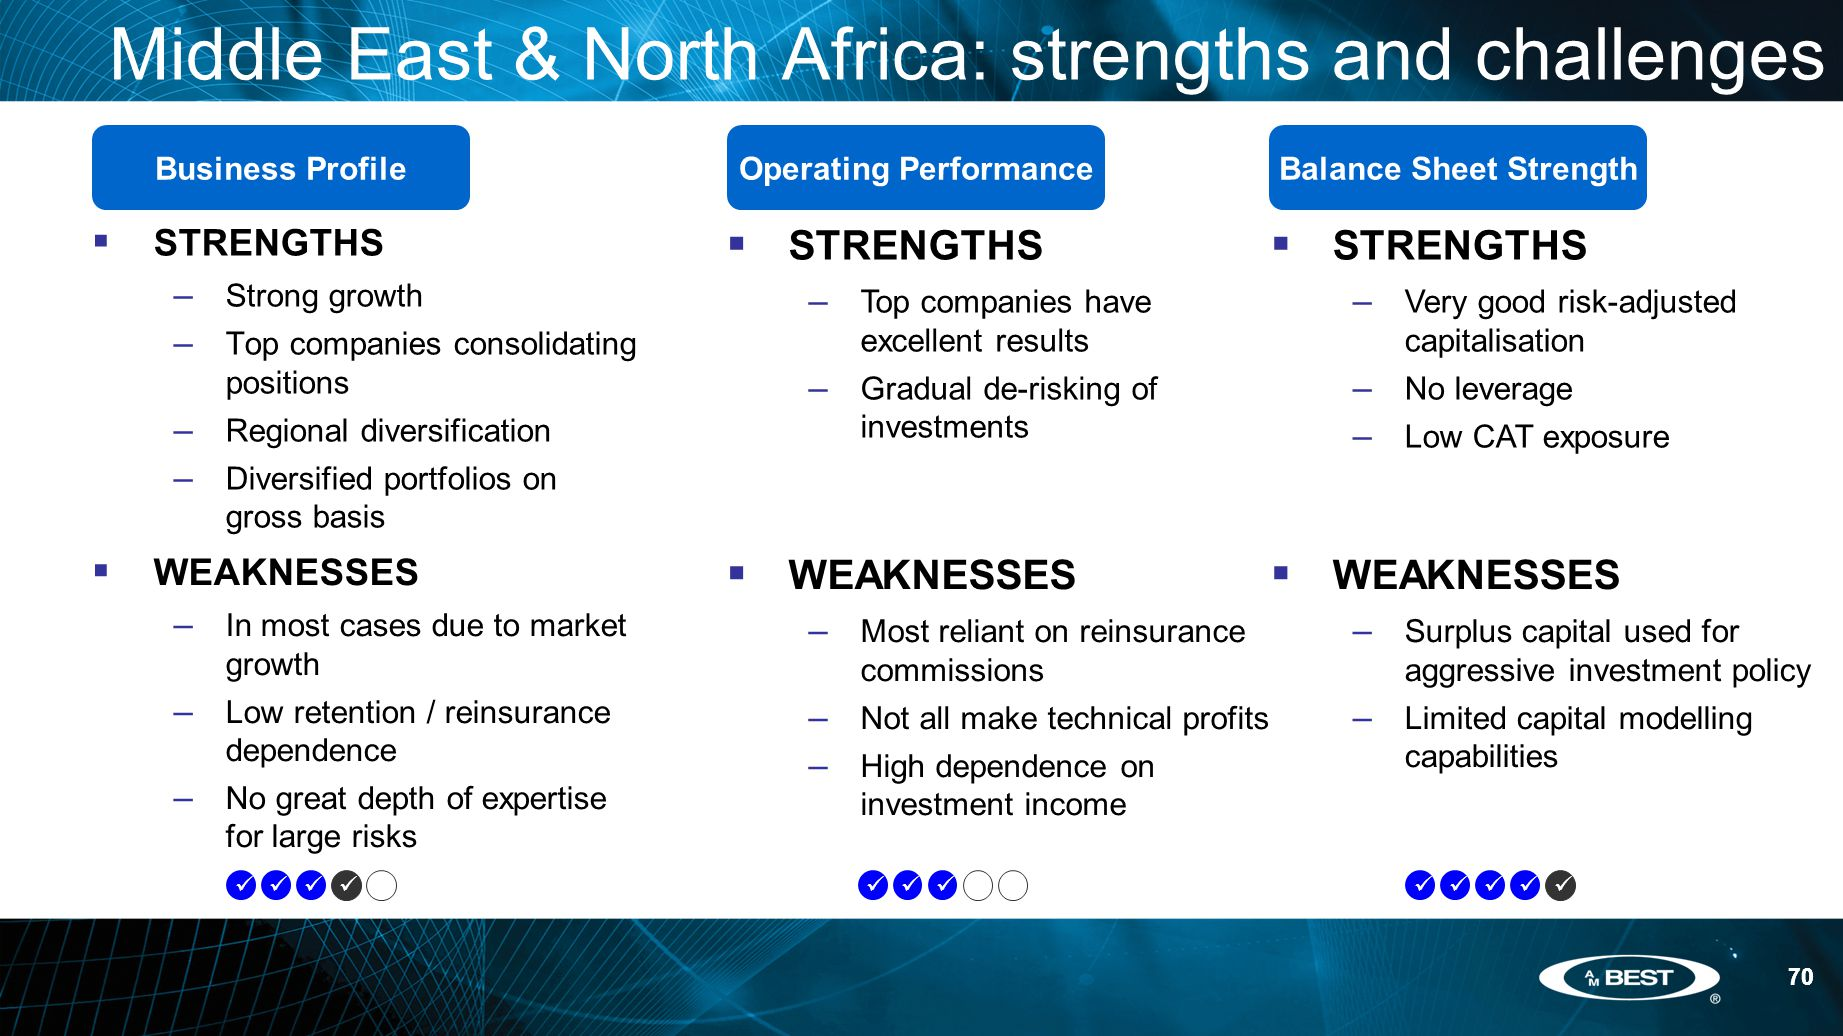 70 Middle East & North Africa: strengths and challenges  STRENGTHS – Strong growth – Top companies consolidating positions – Regional diversification – Diversified portfolios on gross basis Business ProfileOperating PerformanceBalance Sheet Strength  WEAKNESSES – In most cases due to market growth – Low retention / reinsurance dependence – No great depth of expertise for large risks  STRENGTHS – Top companies have excellent results – Gradual de-risking of investments  STRENGTHS – Very good risk-adjusted capitalisation – No leverage – Low CAT exposure  WEAKNESSES – Most reliant on reinsurance commissions – Not all make technical profits – High dependence on investment income  WEAKNESSES – Surplus capital used for aggressive investment policy – Limited capital modelling capabilities